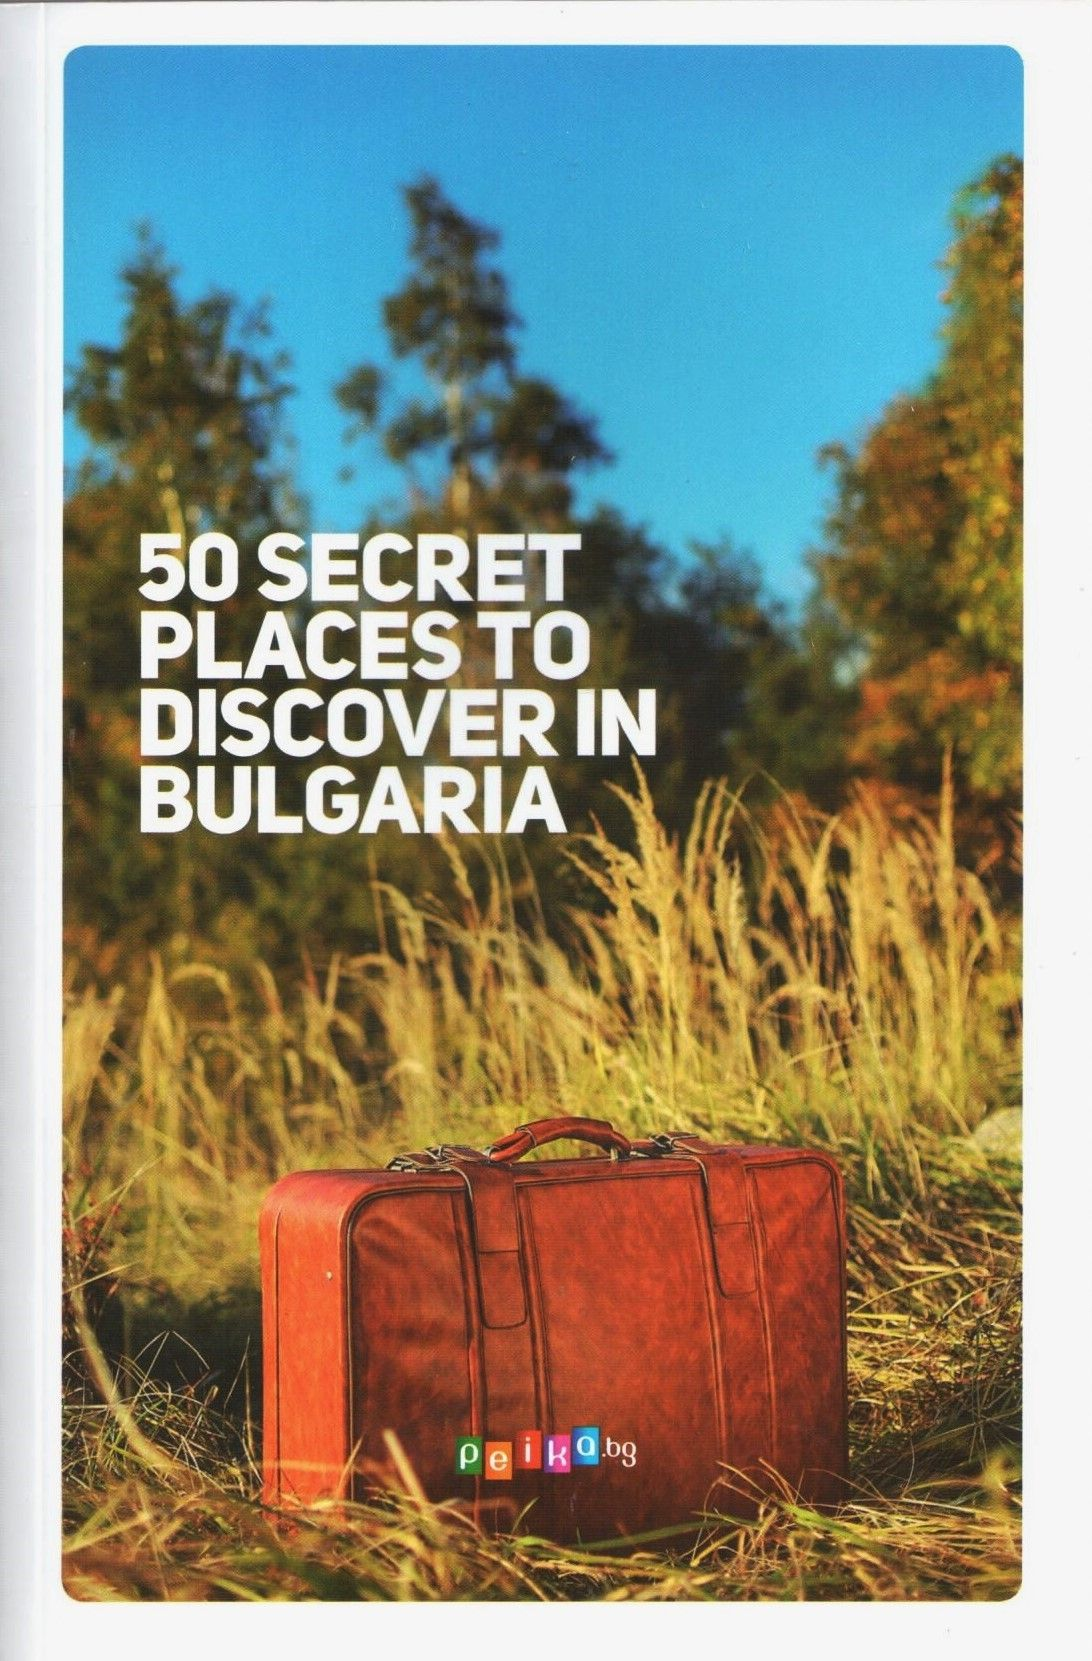 50 secret places to discover in Bulgaria - 1